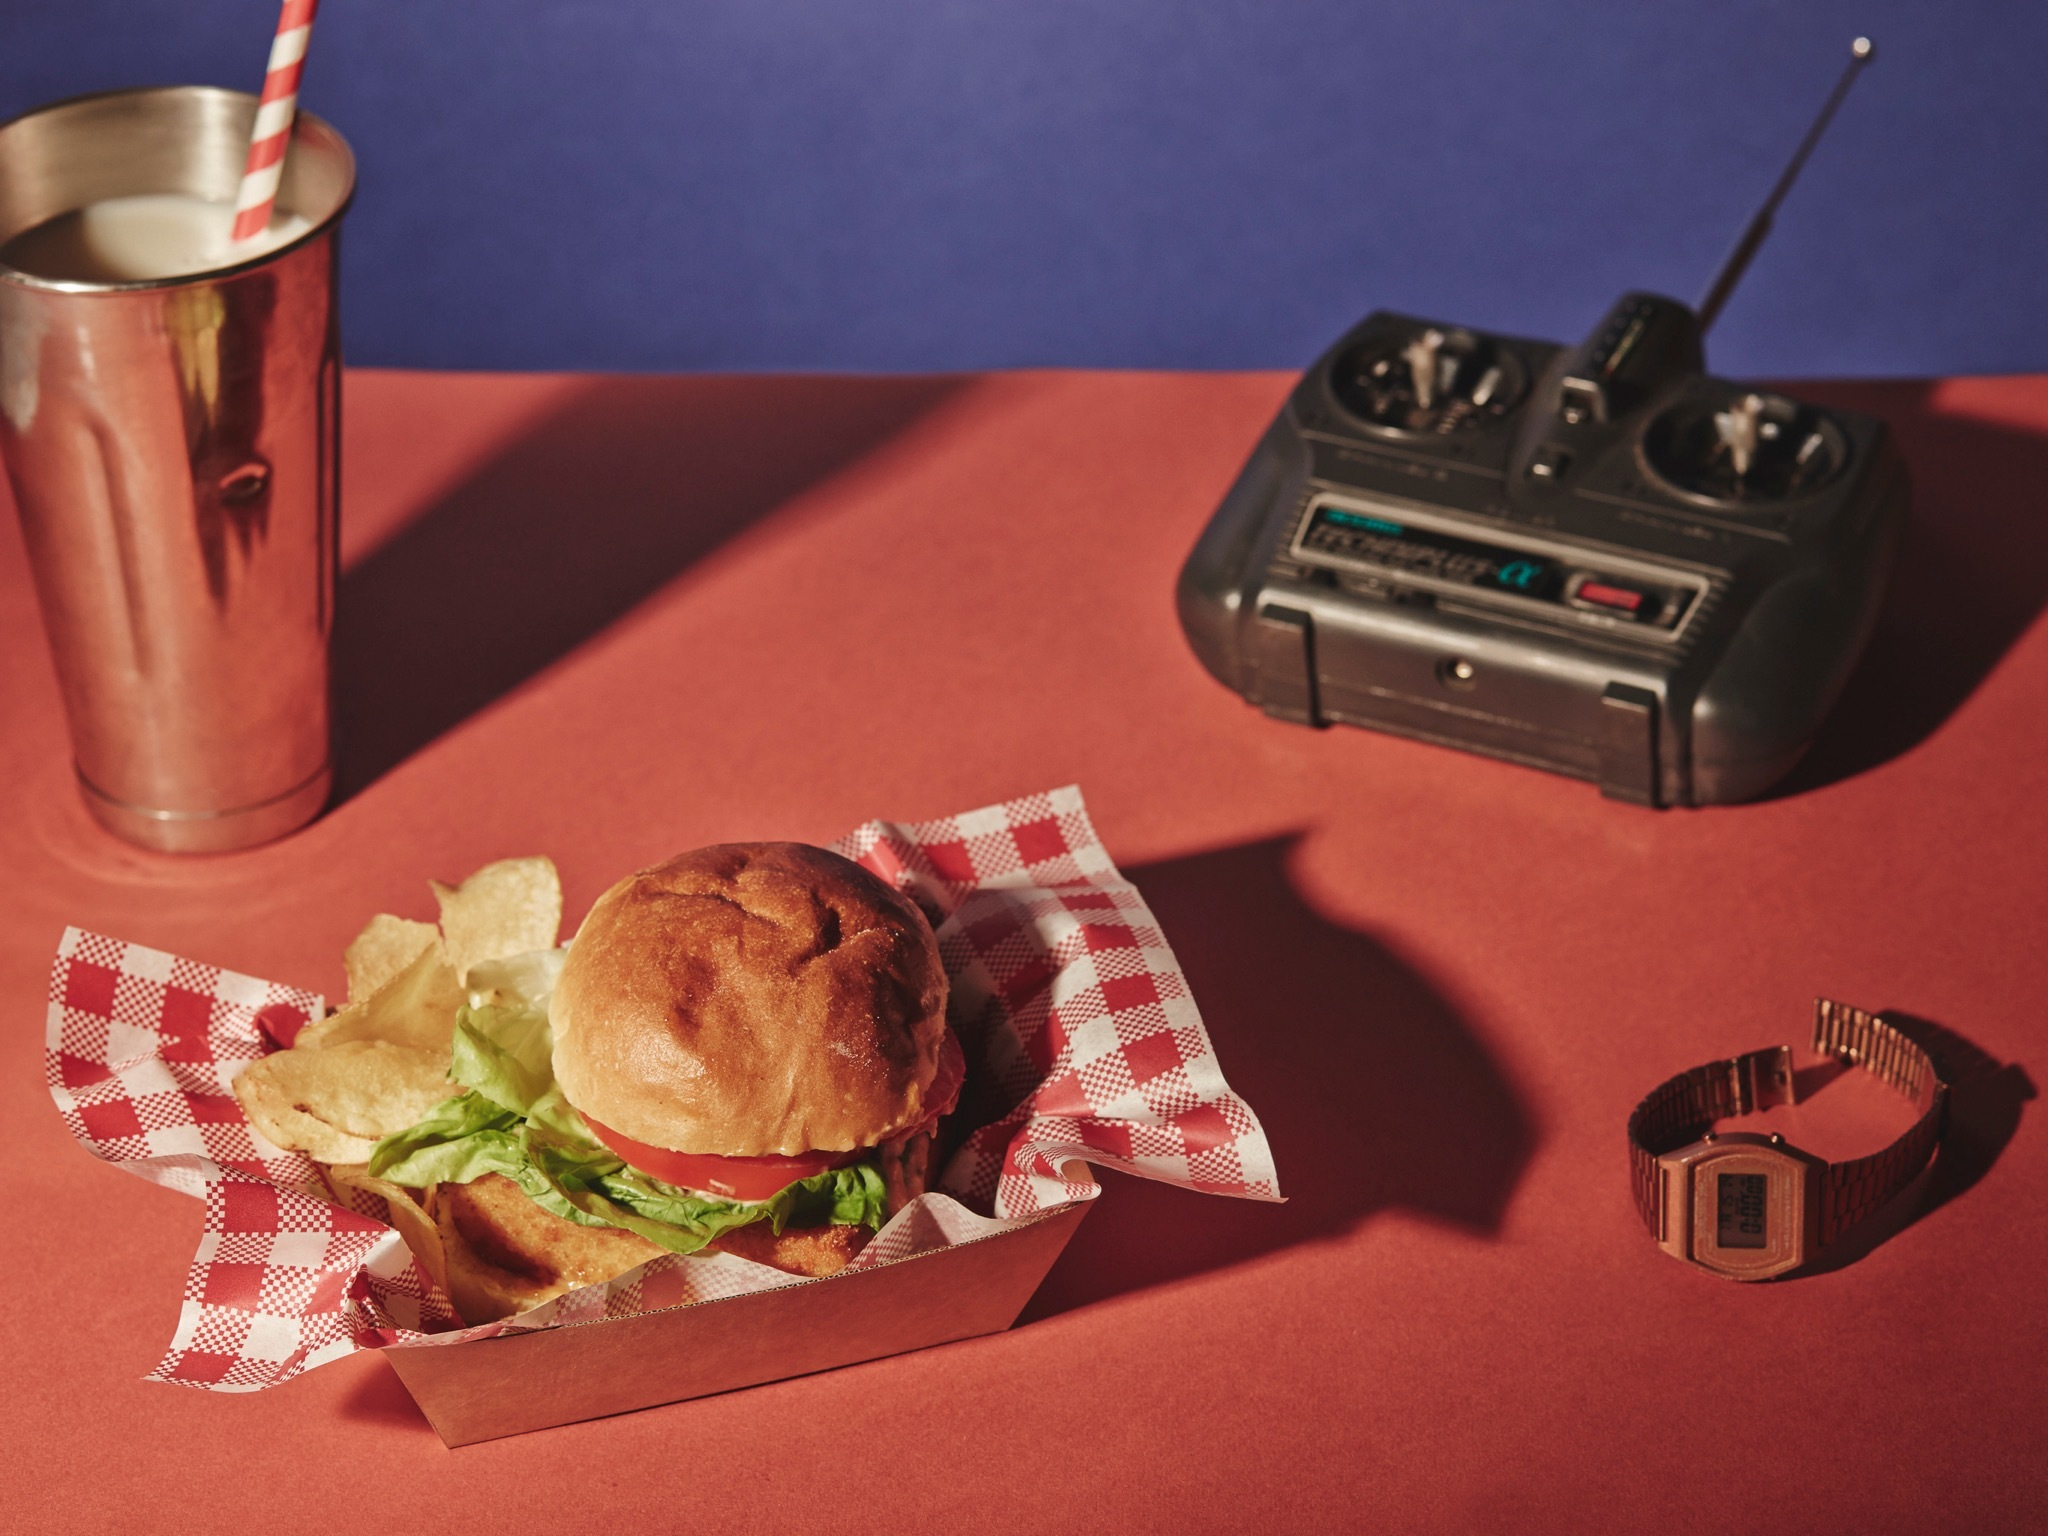 Photograph of a mac and cheese burger, milkshake in a silver shaker with a stripy straw, a vintage watch and a vintage radio, all set on a red tabletop